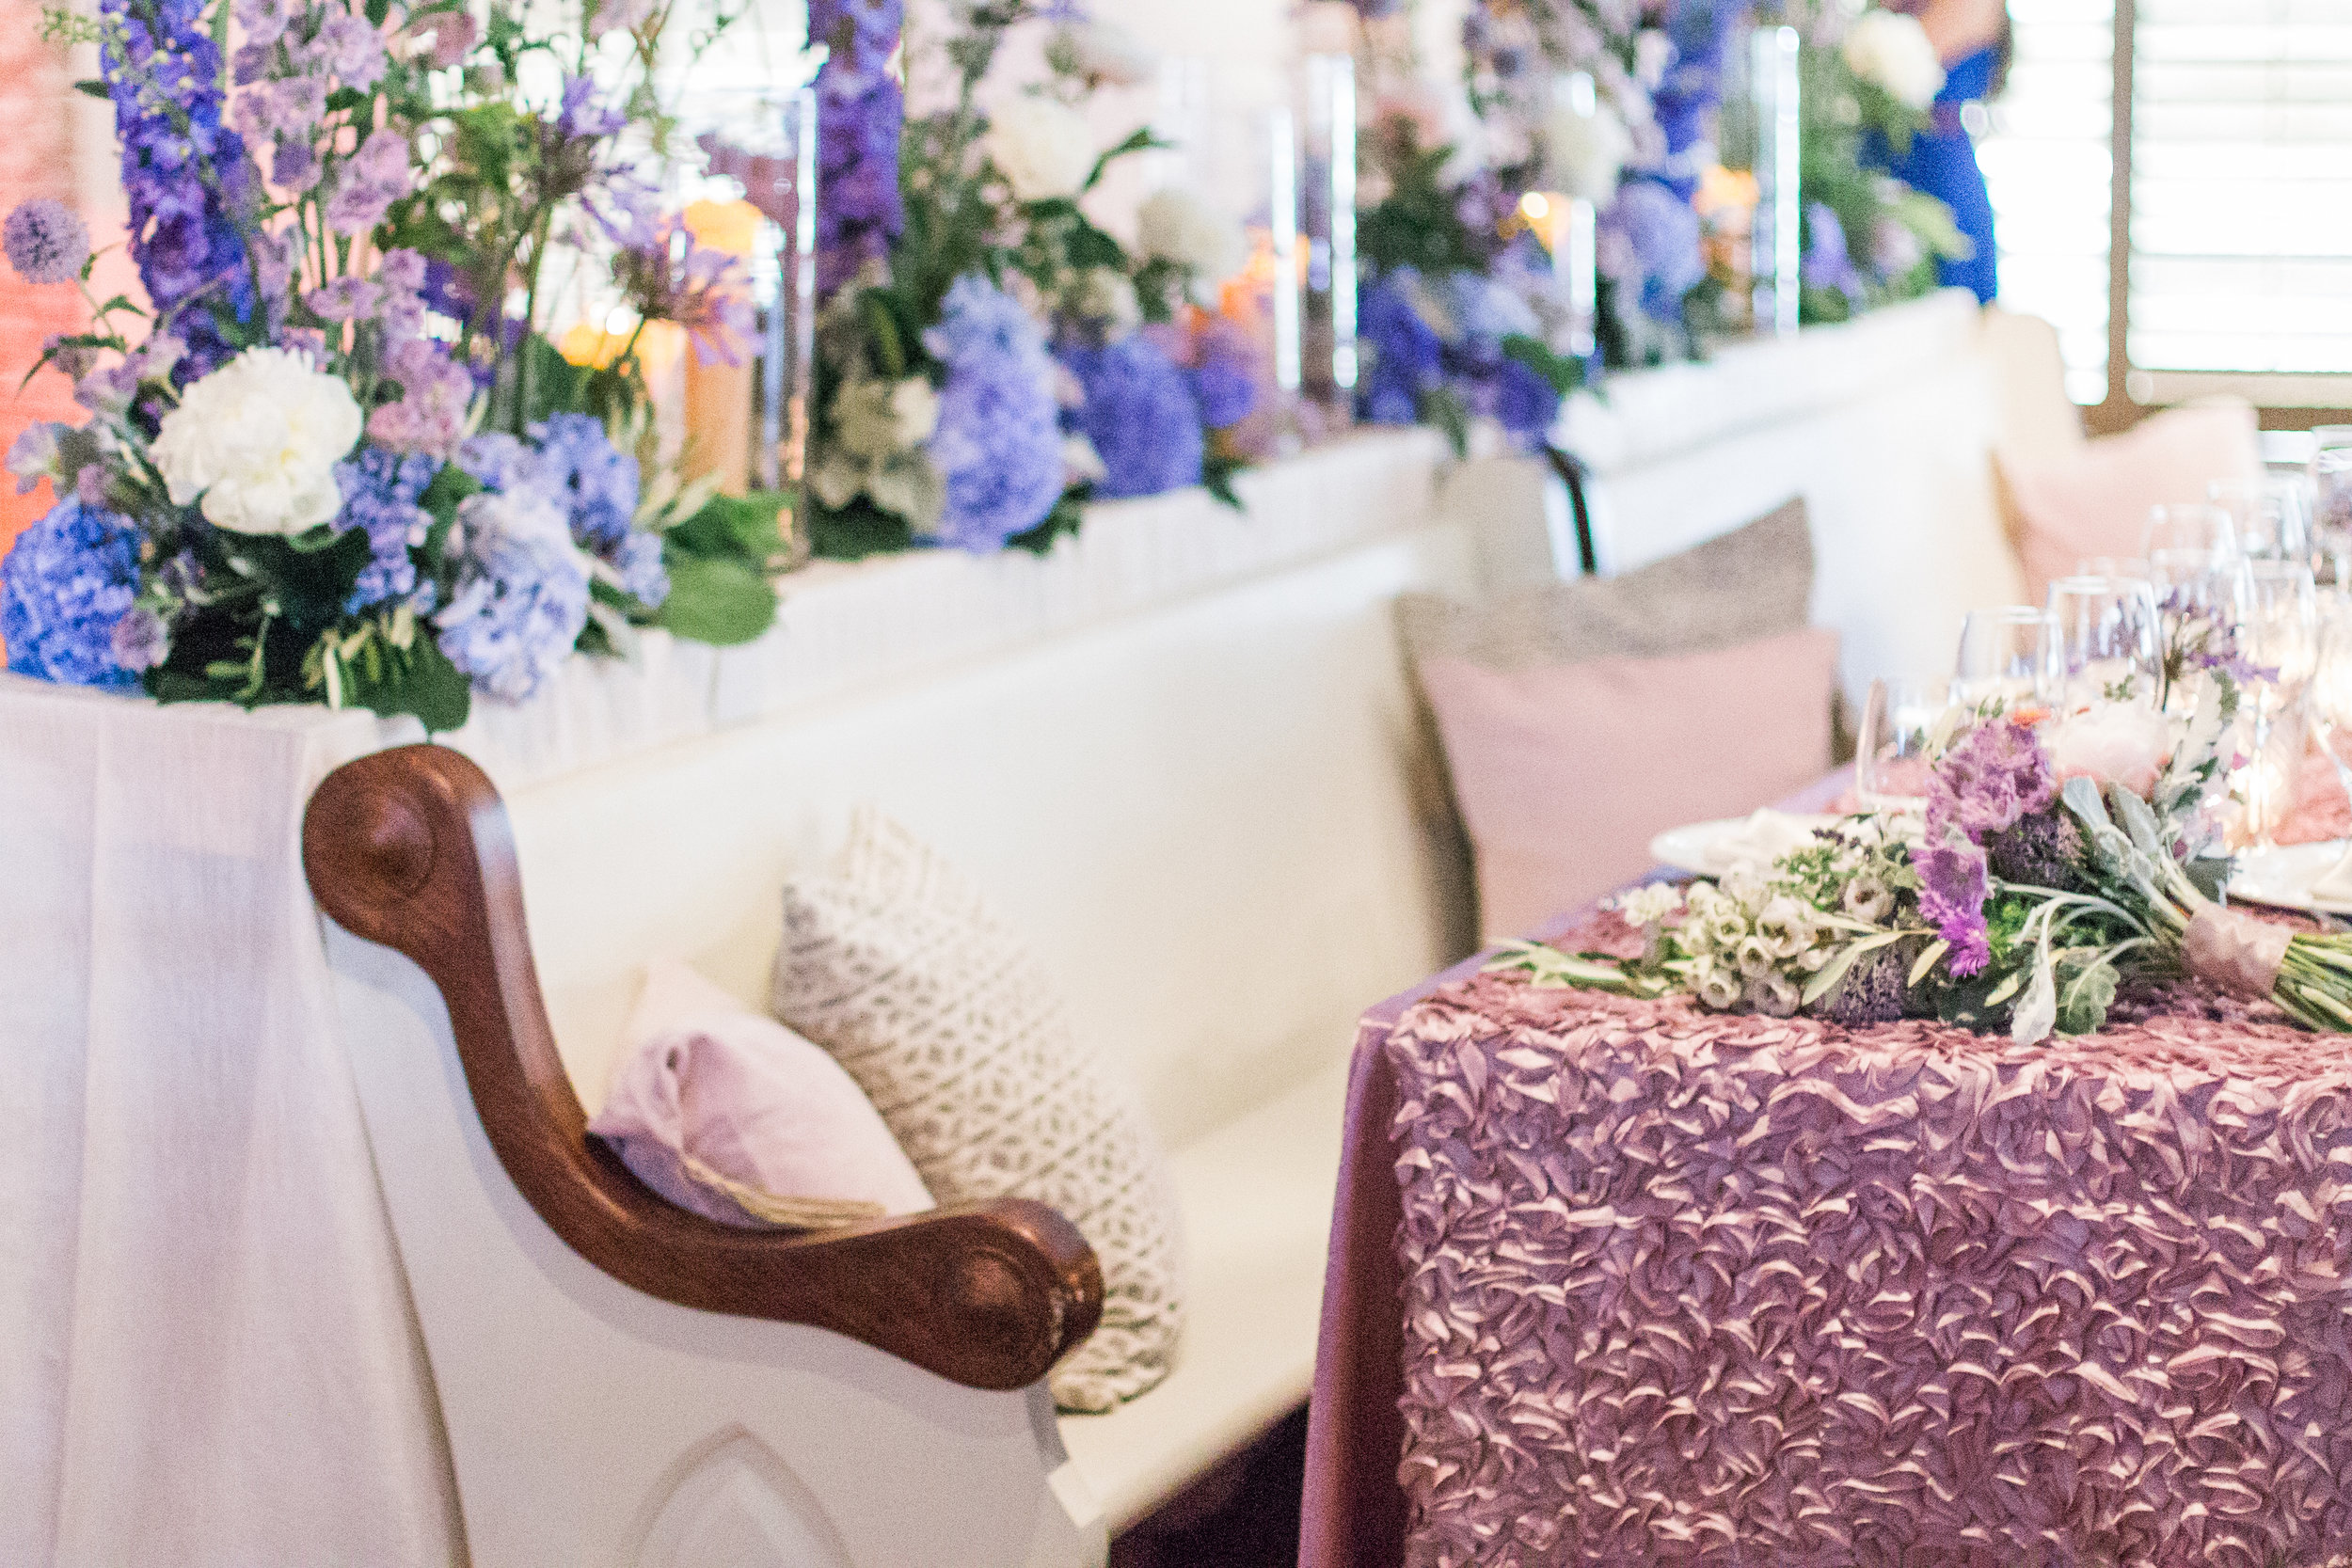 lilac, lavender & periwinkle luxury wedding at cannon green charleston by scarlet plan & design for revolution wedding tours (128).jpg